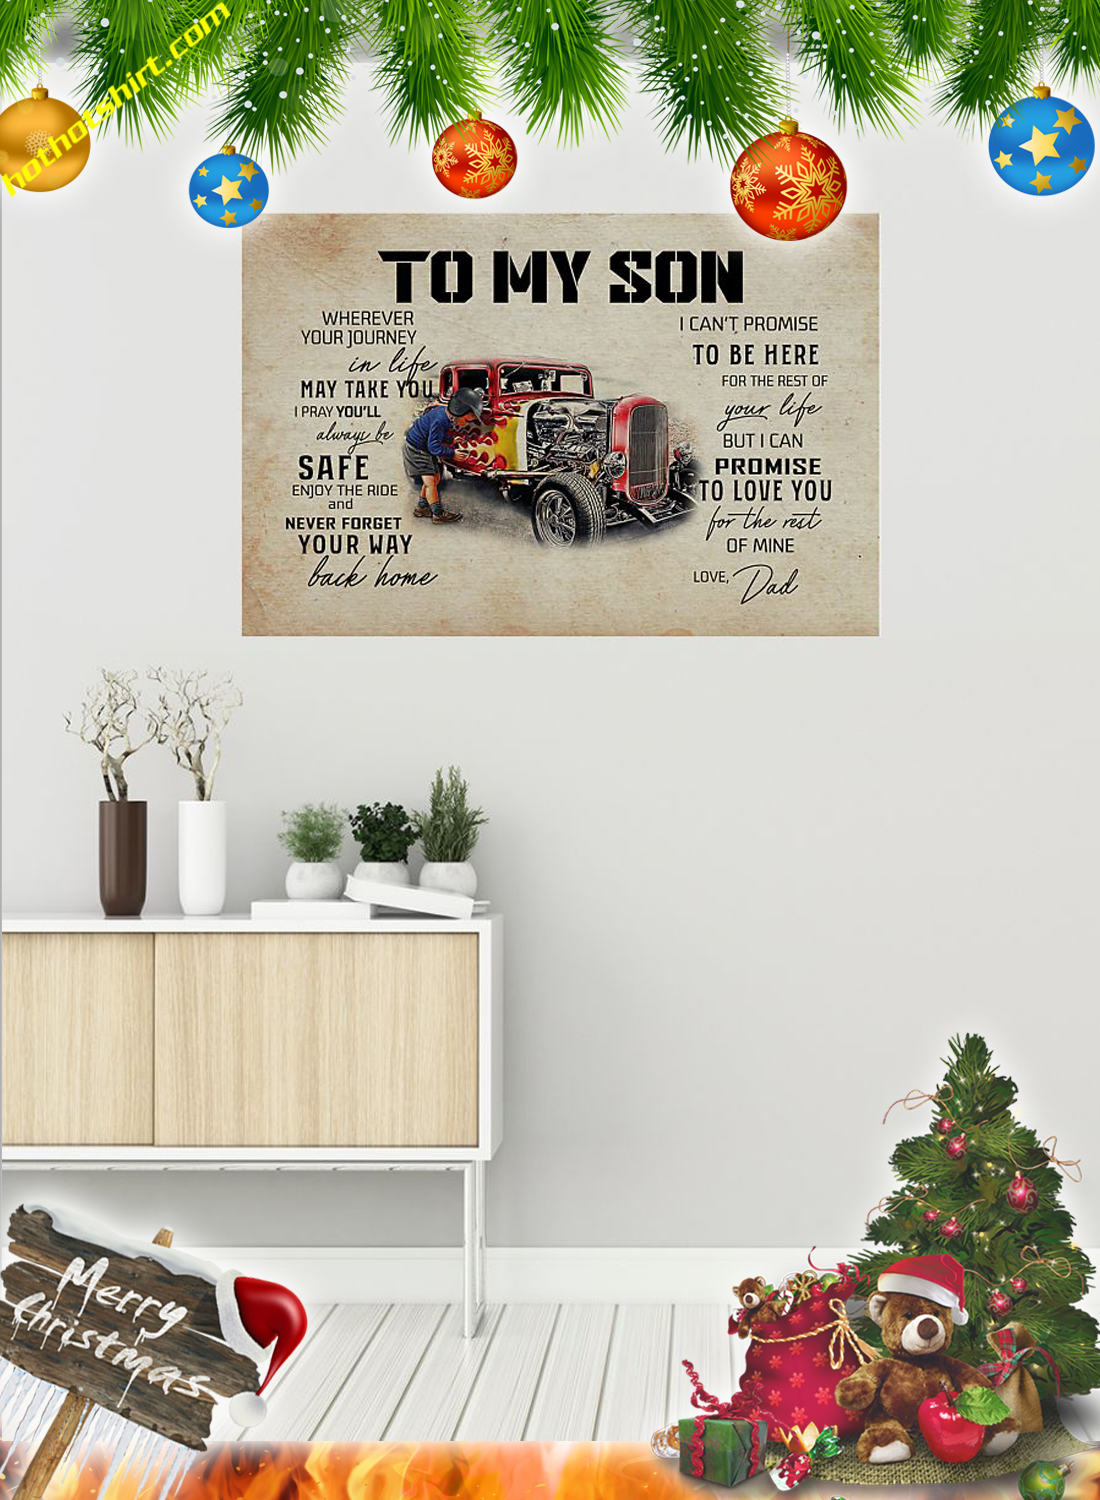 Hot rod To my son dad poster 1